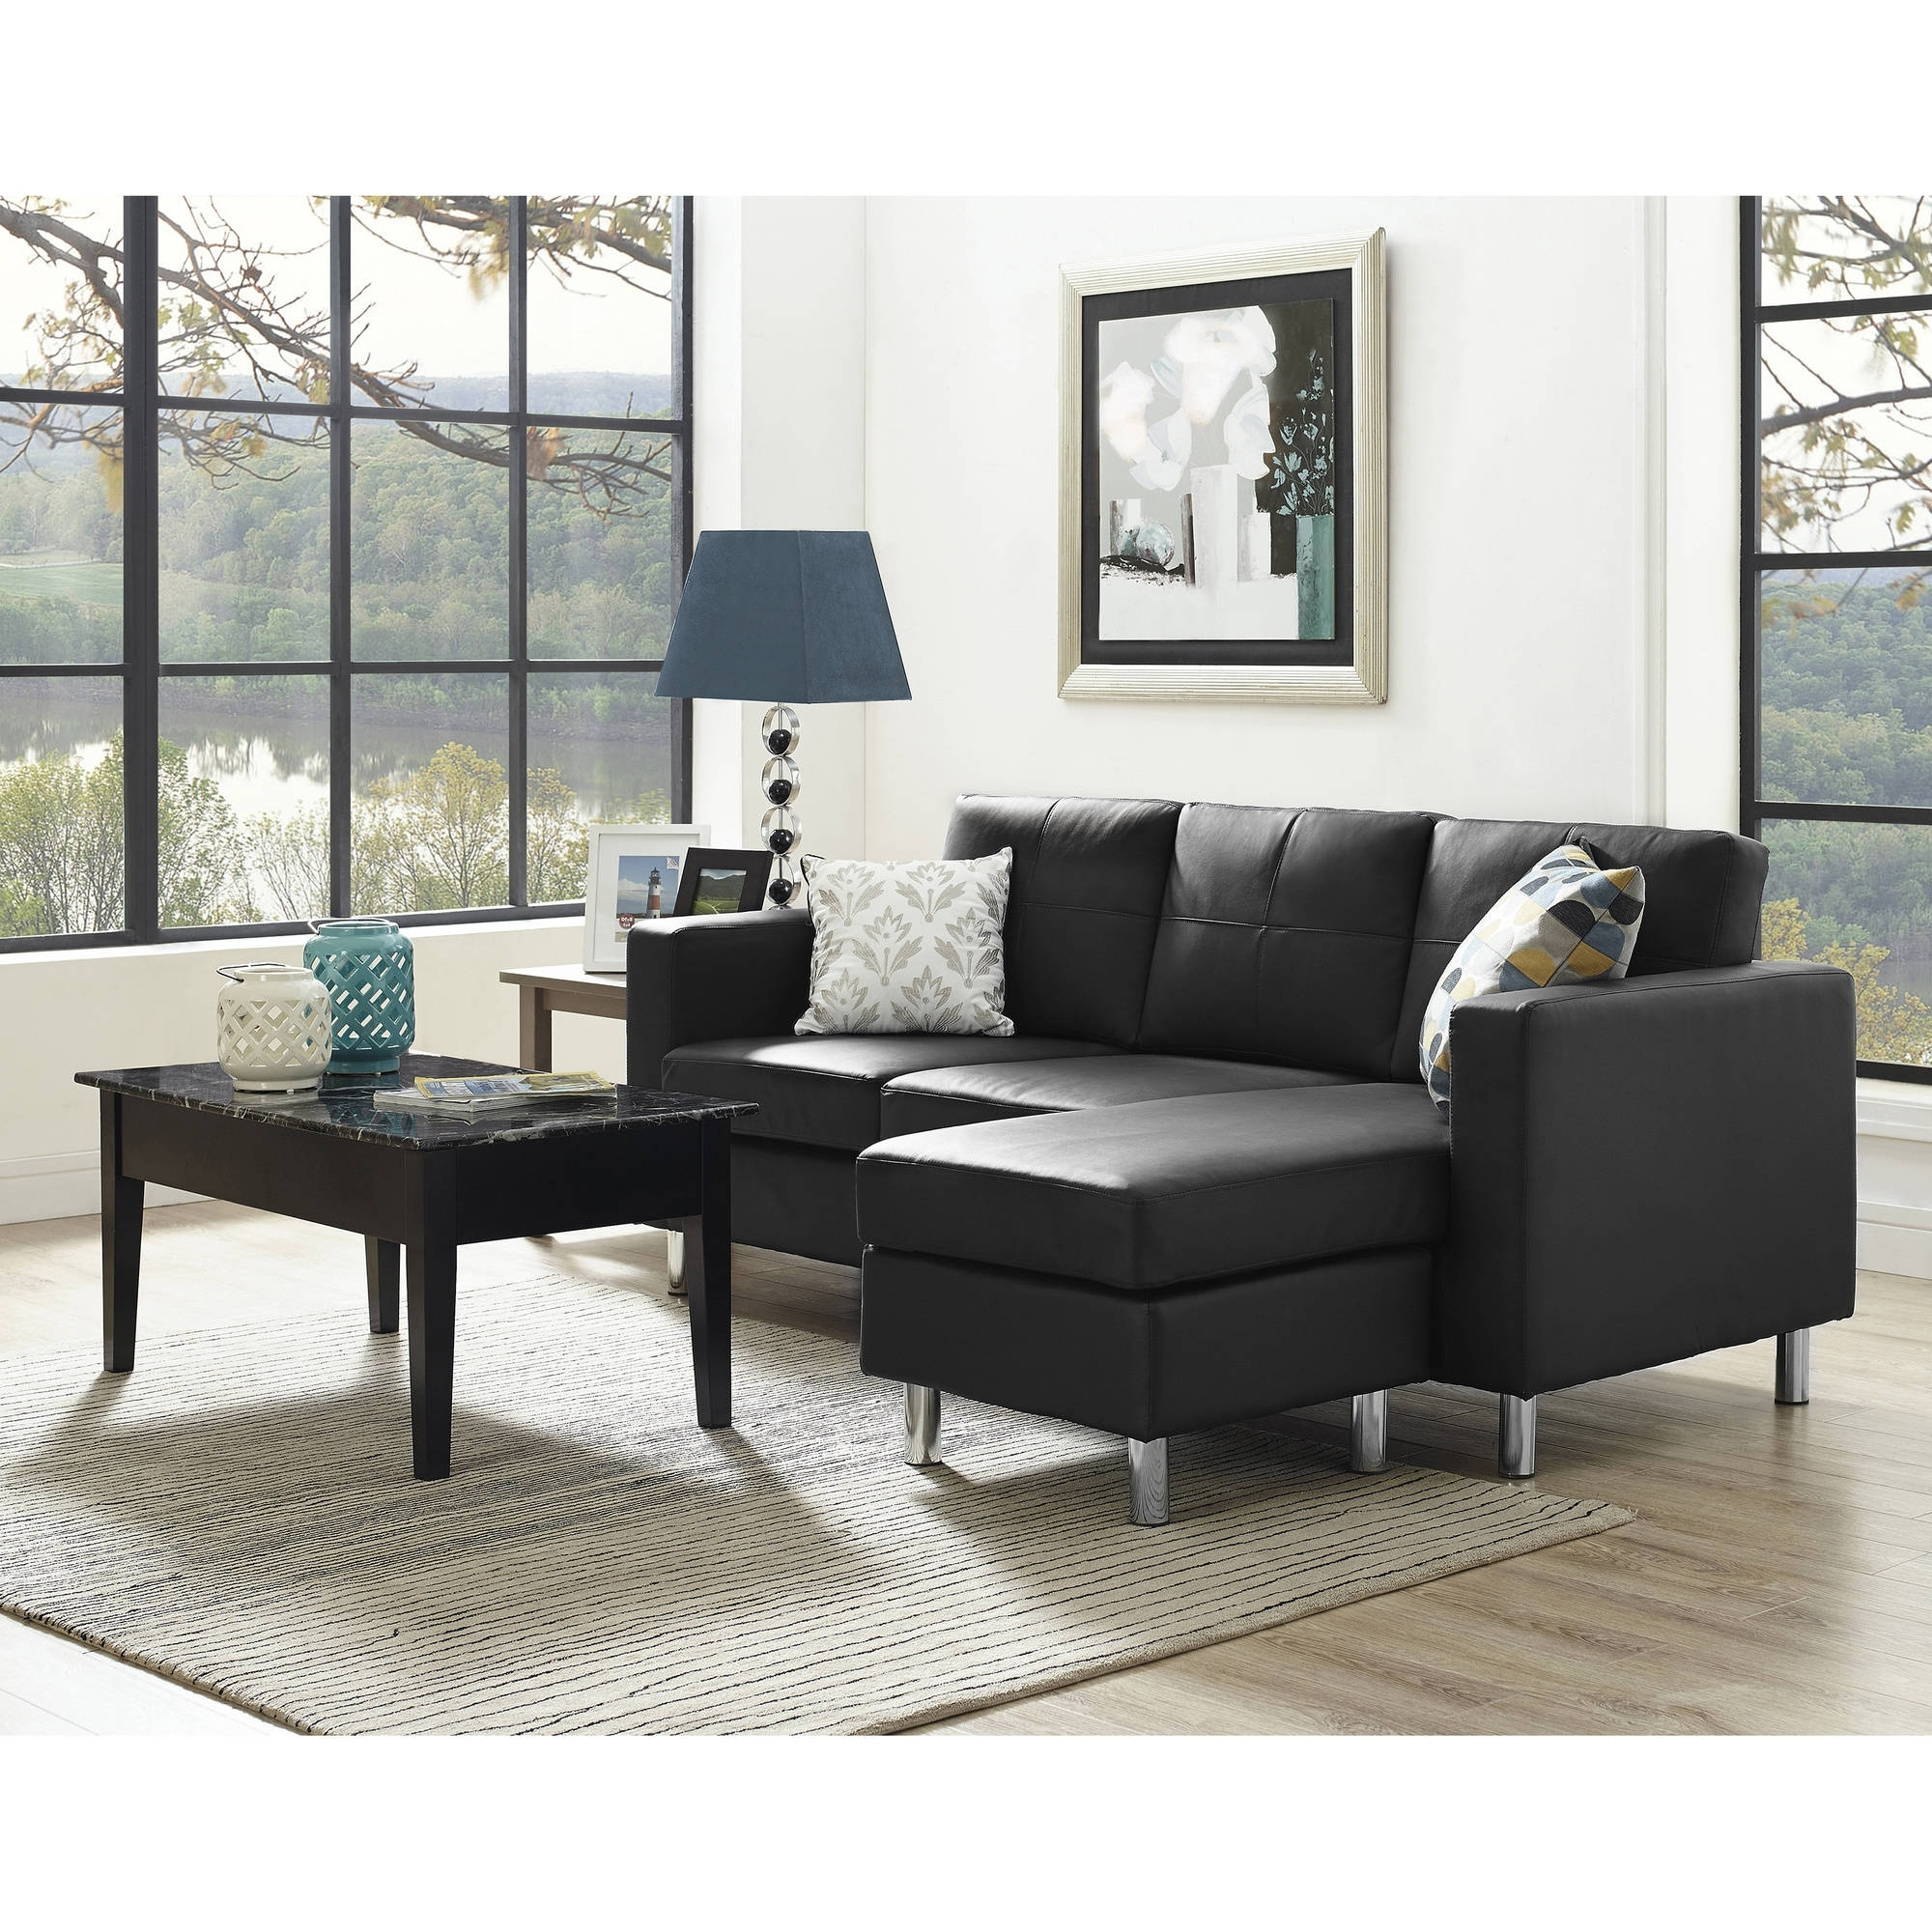 Preferred Sectional Sofas For Small Places Regarding Dorel Living Small Spaces Configurable Sectional Sofa, Multiple (View 12 of 20)